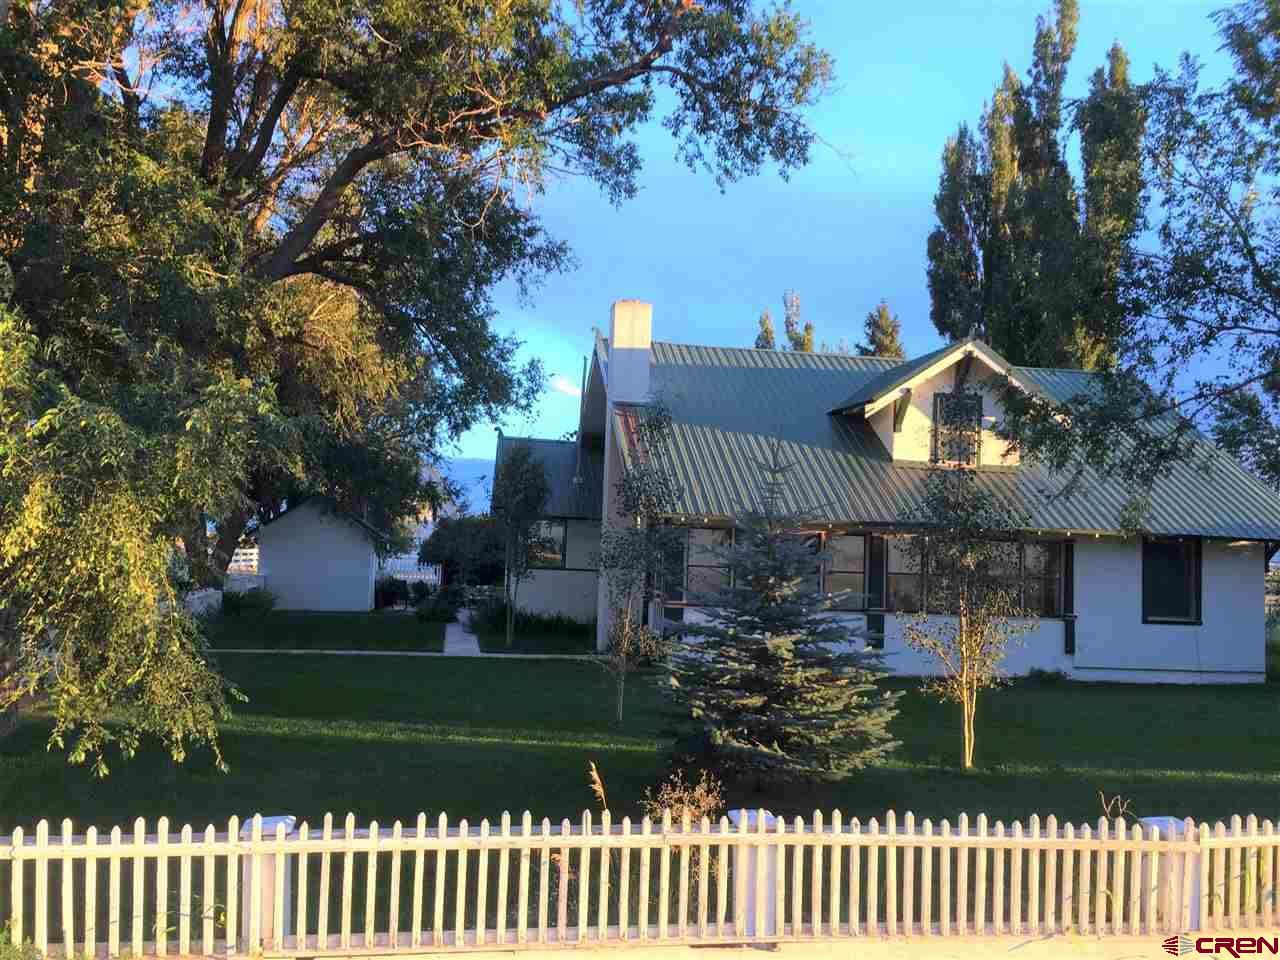 Photo of 552 E. COUNTY RD 7 N, Monte Vista, CO 81144 (MLS # 763491)